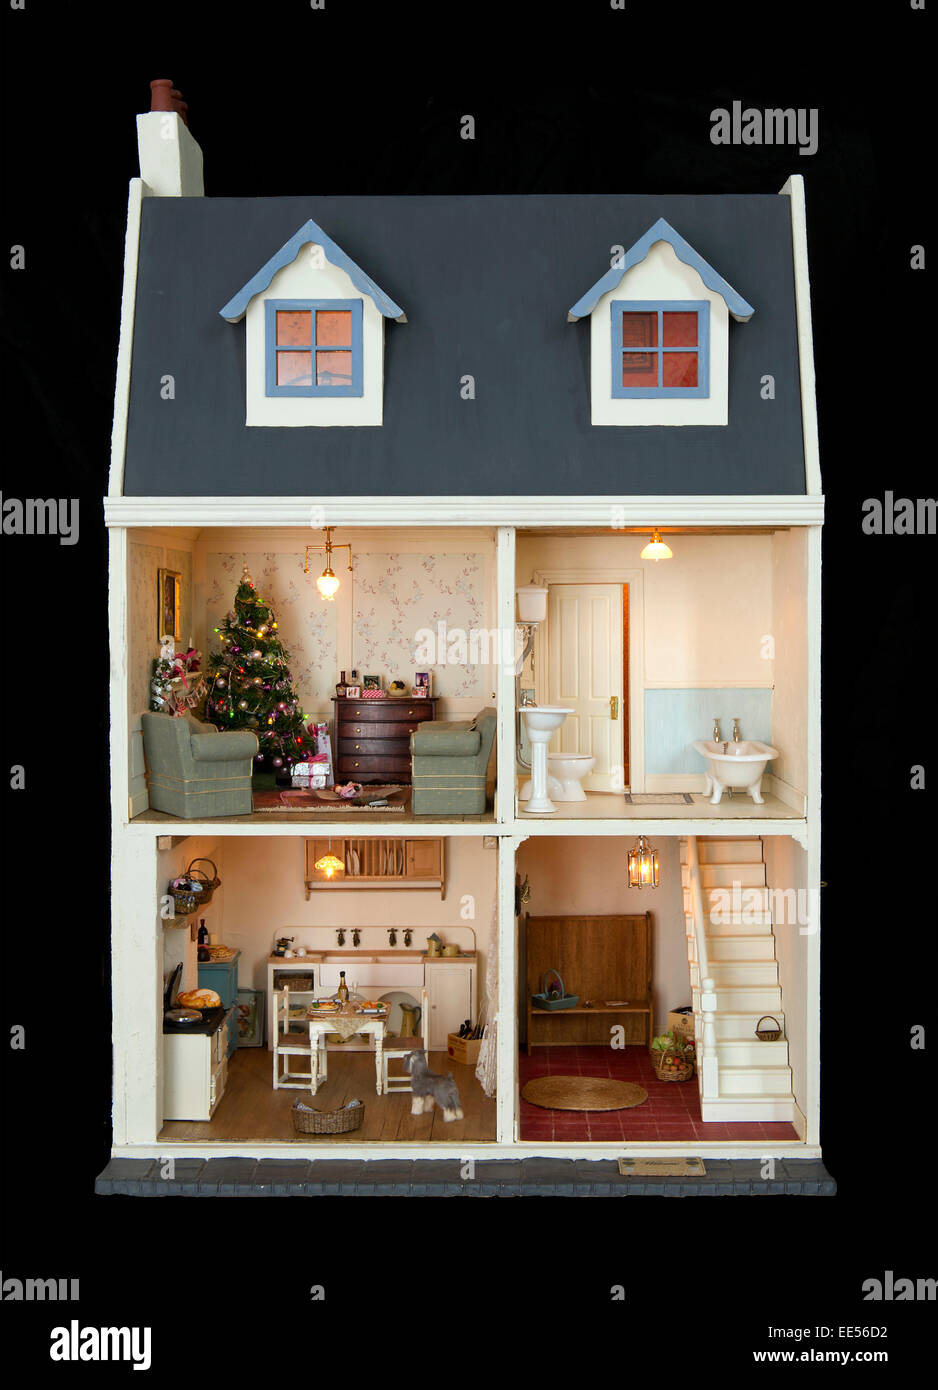 A French Period Dolls House With 3 Rooms Stock Photo 77561486 Alamy